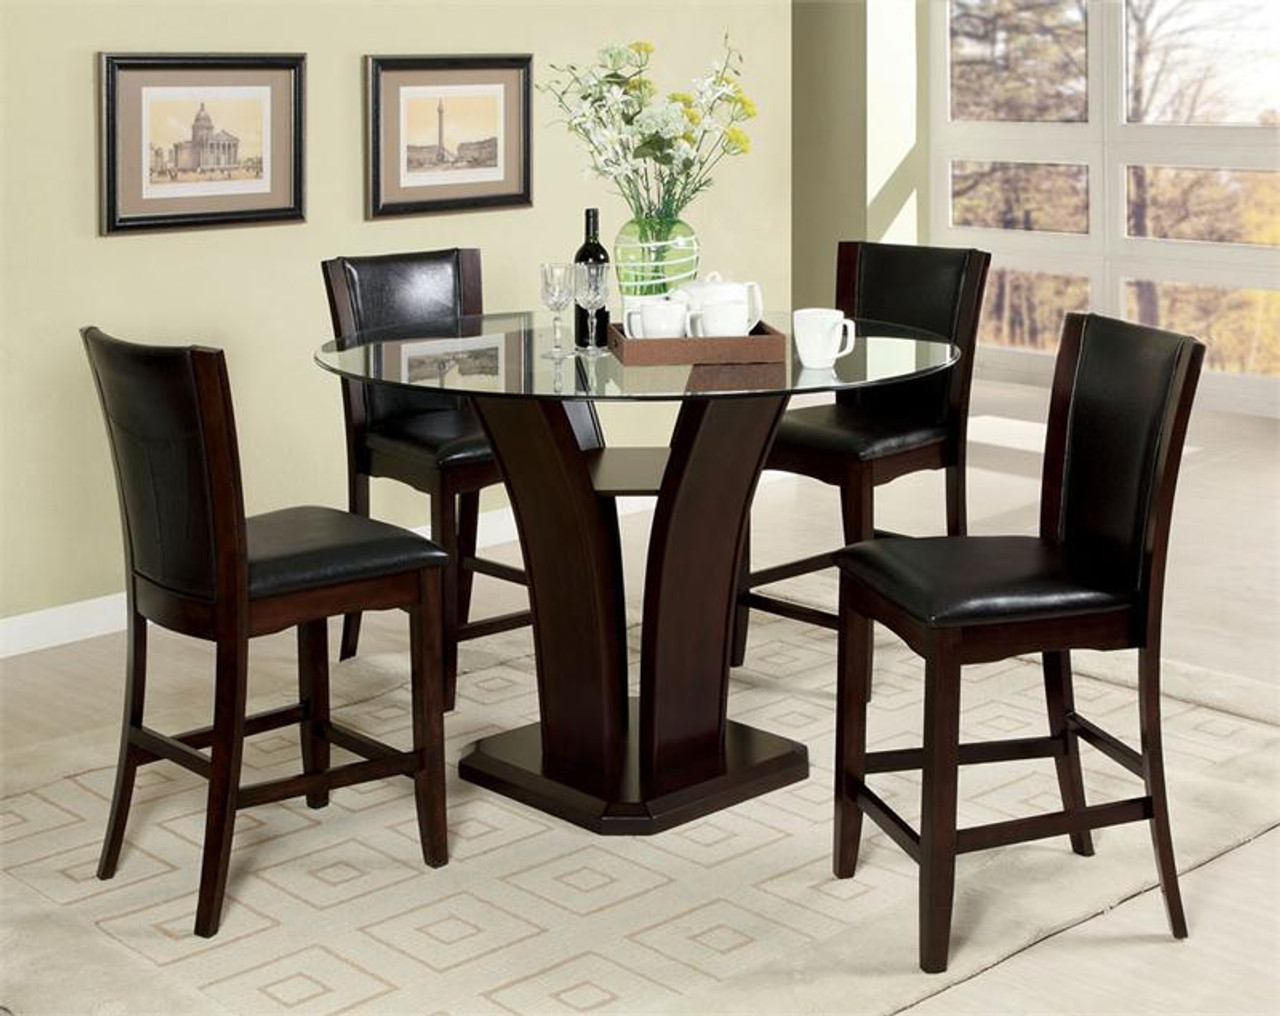 48 Manhattan Glass Counter Height Dining Table w/Chairs